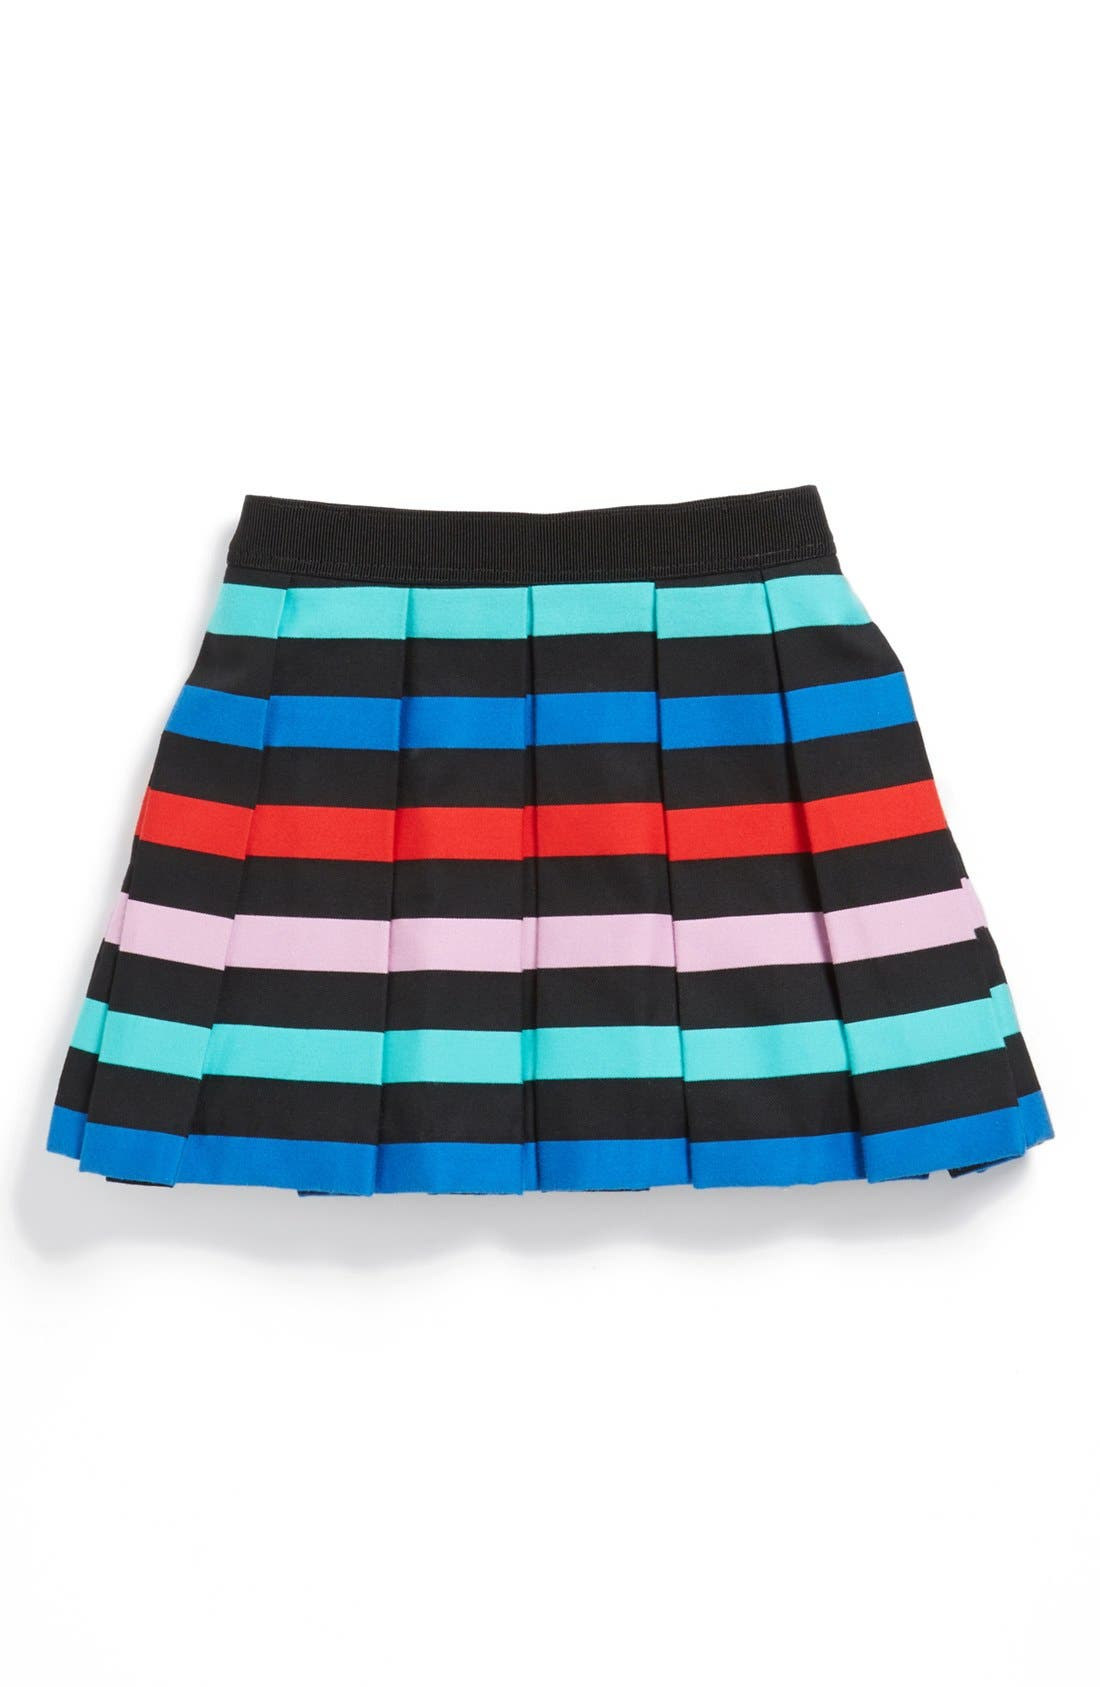 Alternate Image 1 Selected - Milly Minis Pleated Skirt (Toddler Girls, Little Girls & Big Girls)